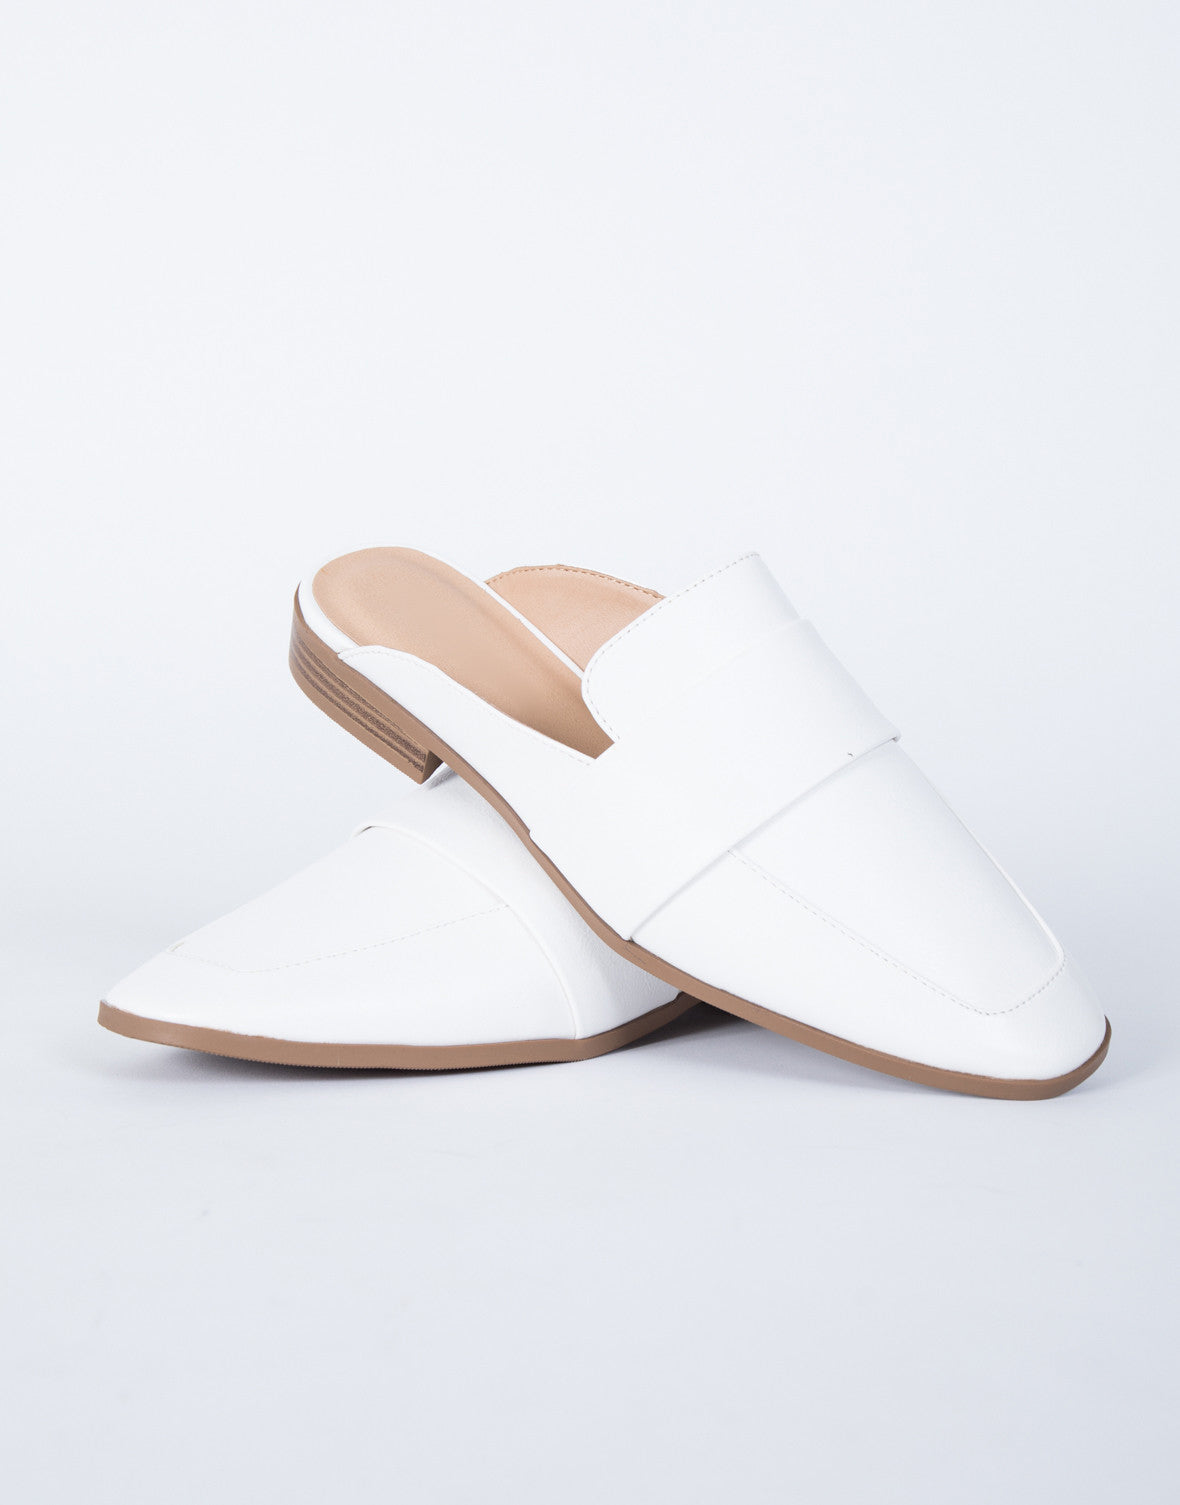 Clean Slate Loafers - White Leather